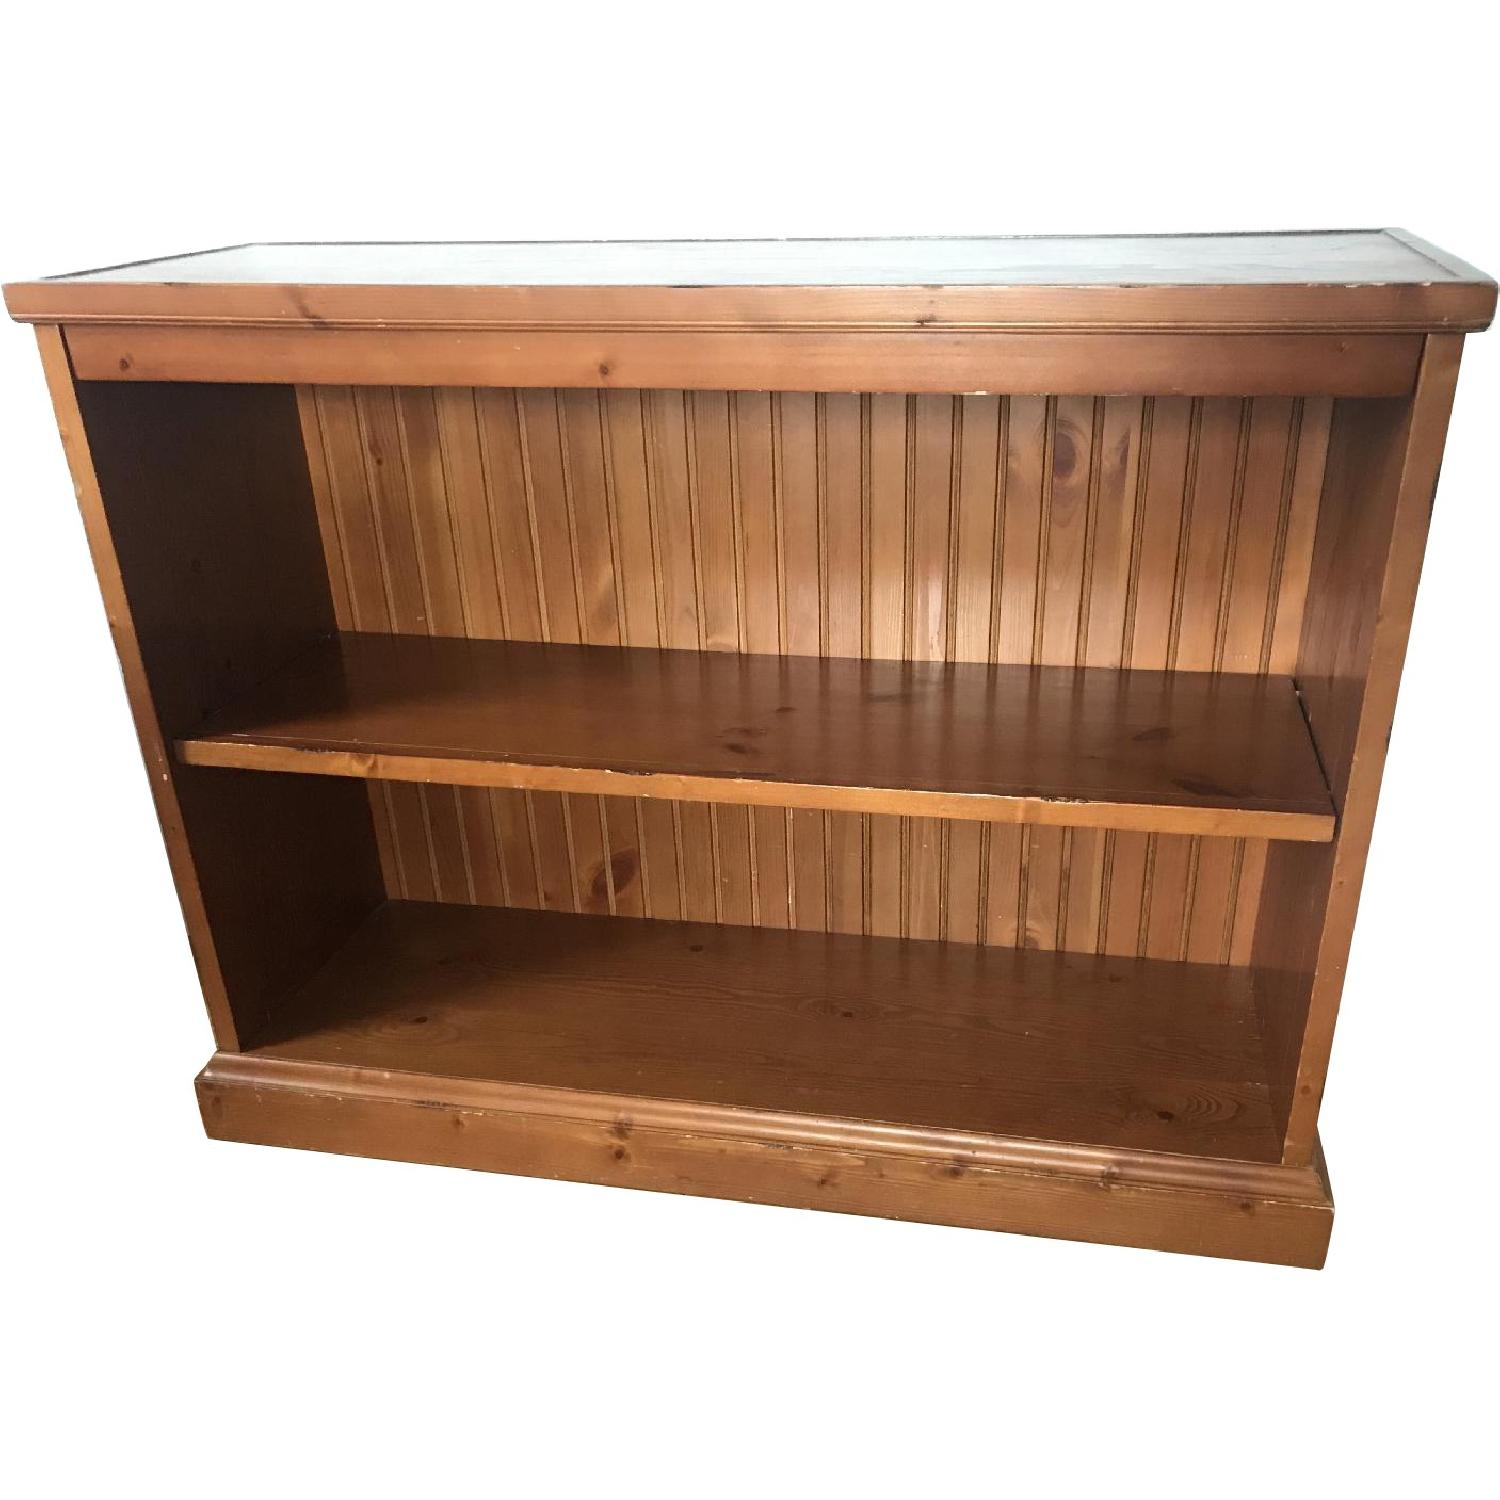 Pottery Barn 2-Shelf Bookshelf